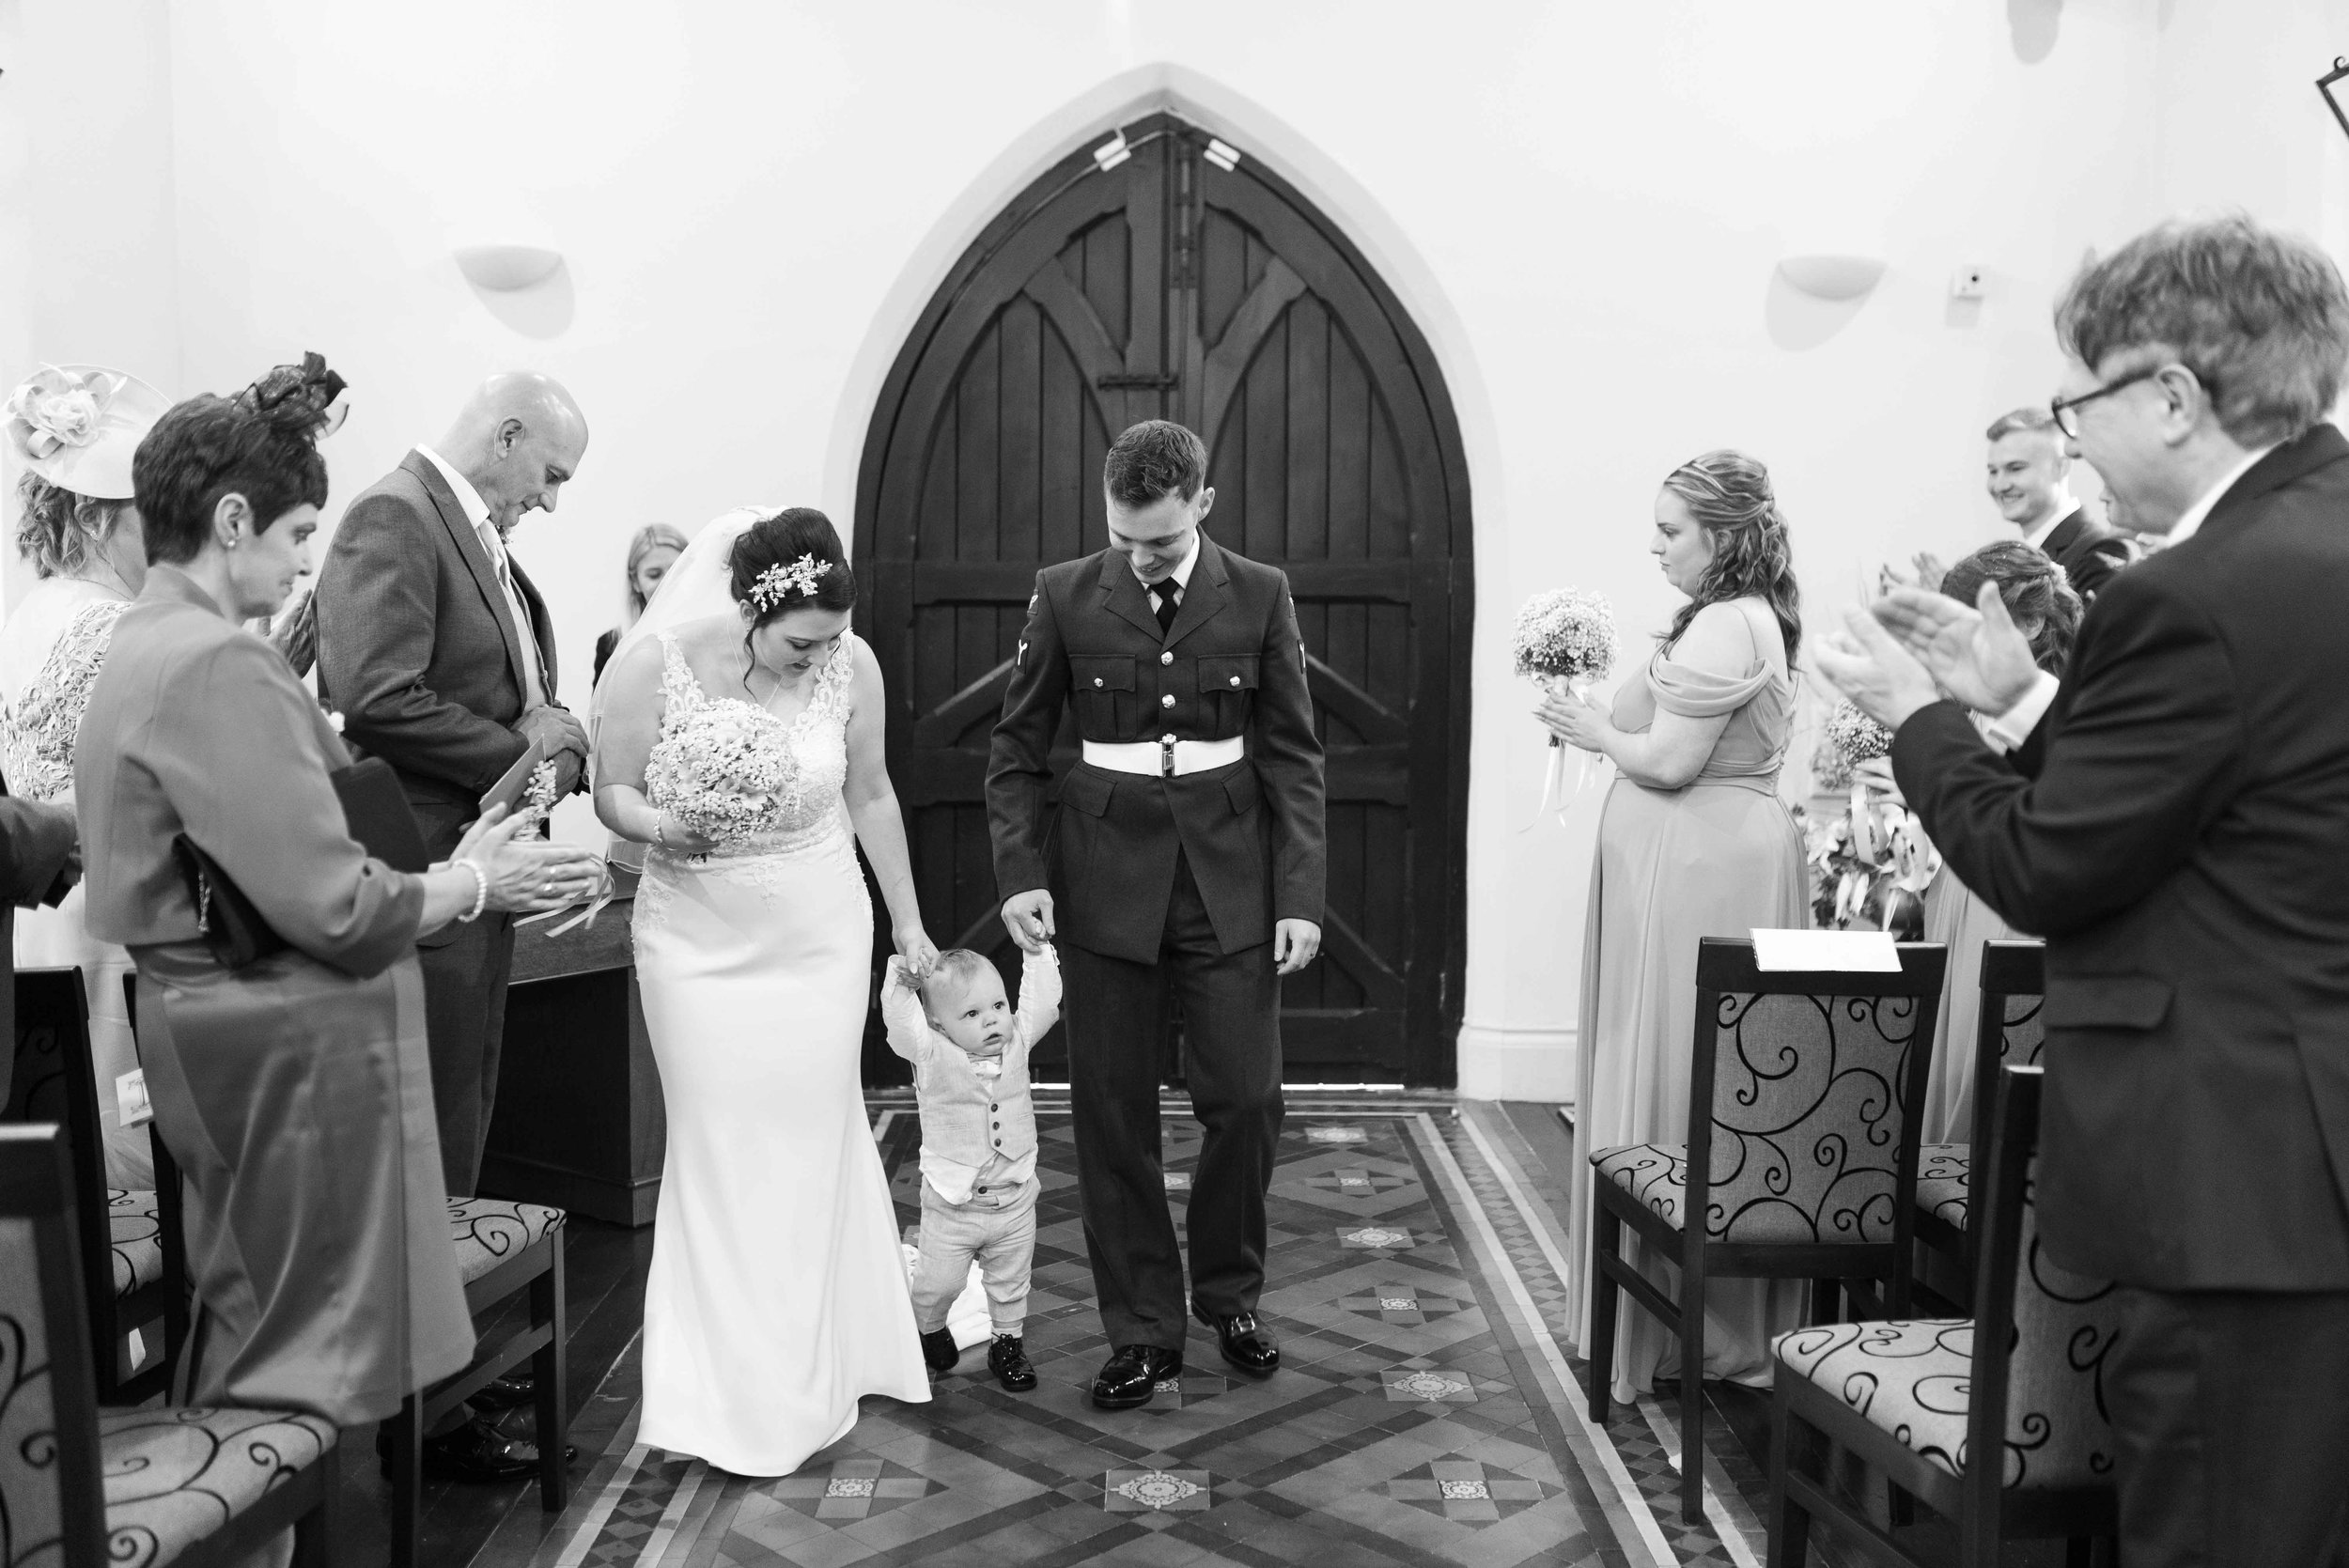 LEA-COOPER-PHOTOGRAPHY-WEDDING-PHOTOGRAPHY-THOMAS-ROBINSON-BUILDING-STOURBRIDGE-YE-OLDE-PUNCHBOWL-INN-BRIDGNORTH-WOLVERHAMPTON-WILLENHALL-UK-WEDDING-PHOTOGRAPHER-19.JPG